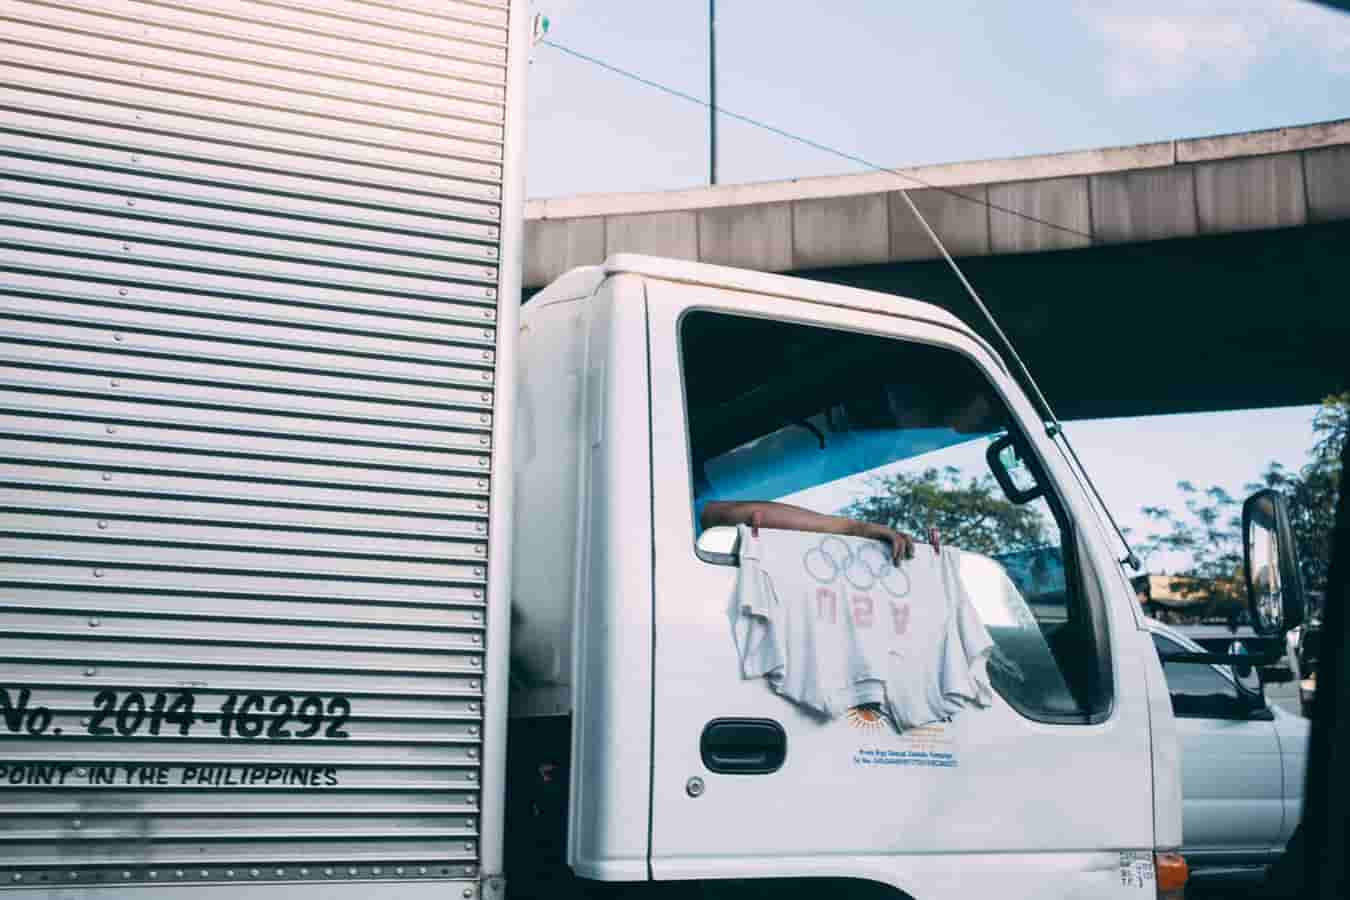 Image | commercial truck parked